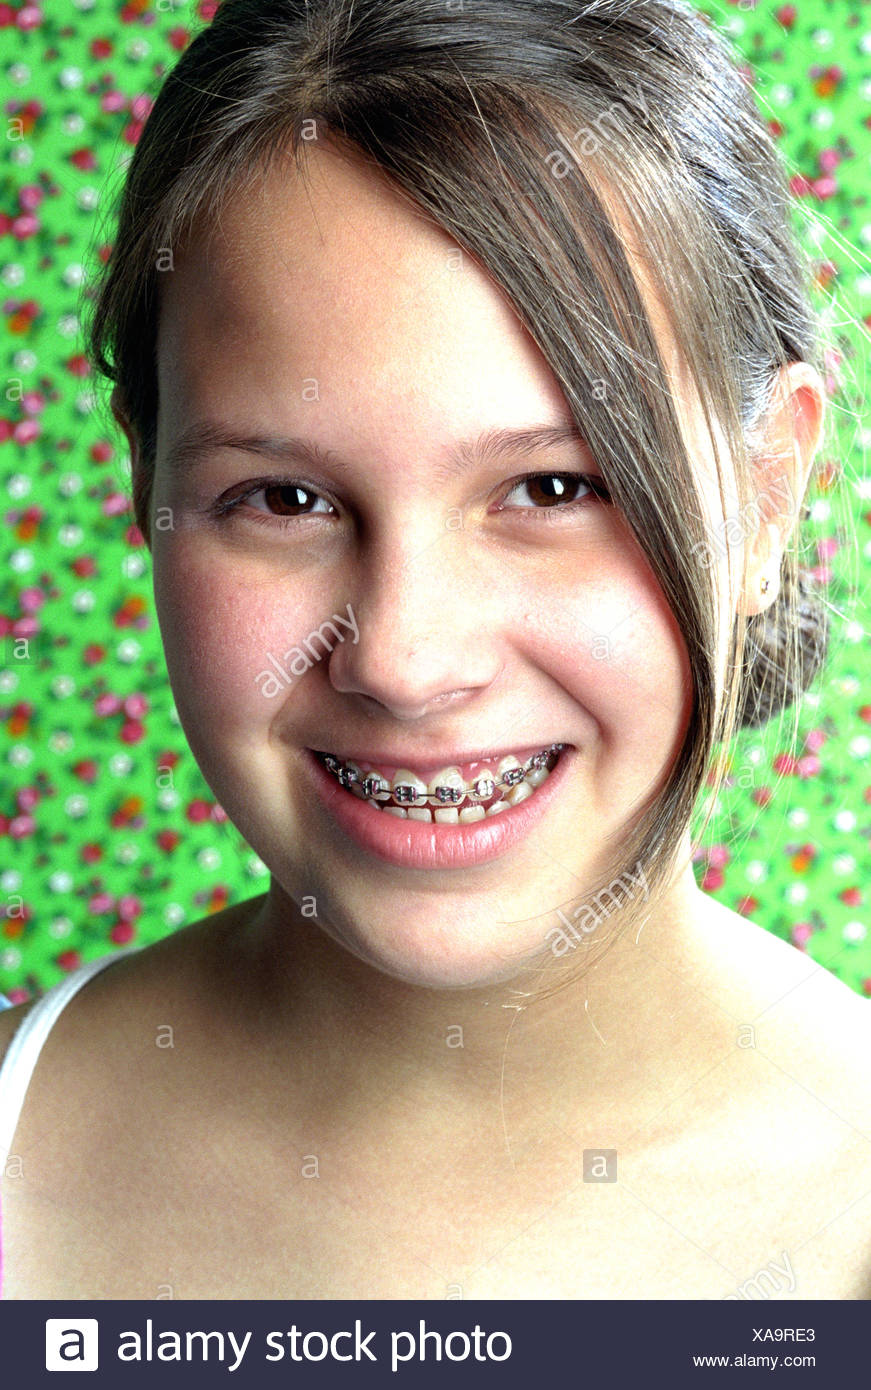 Consider, Young teen girls braces facial recommend you